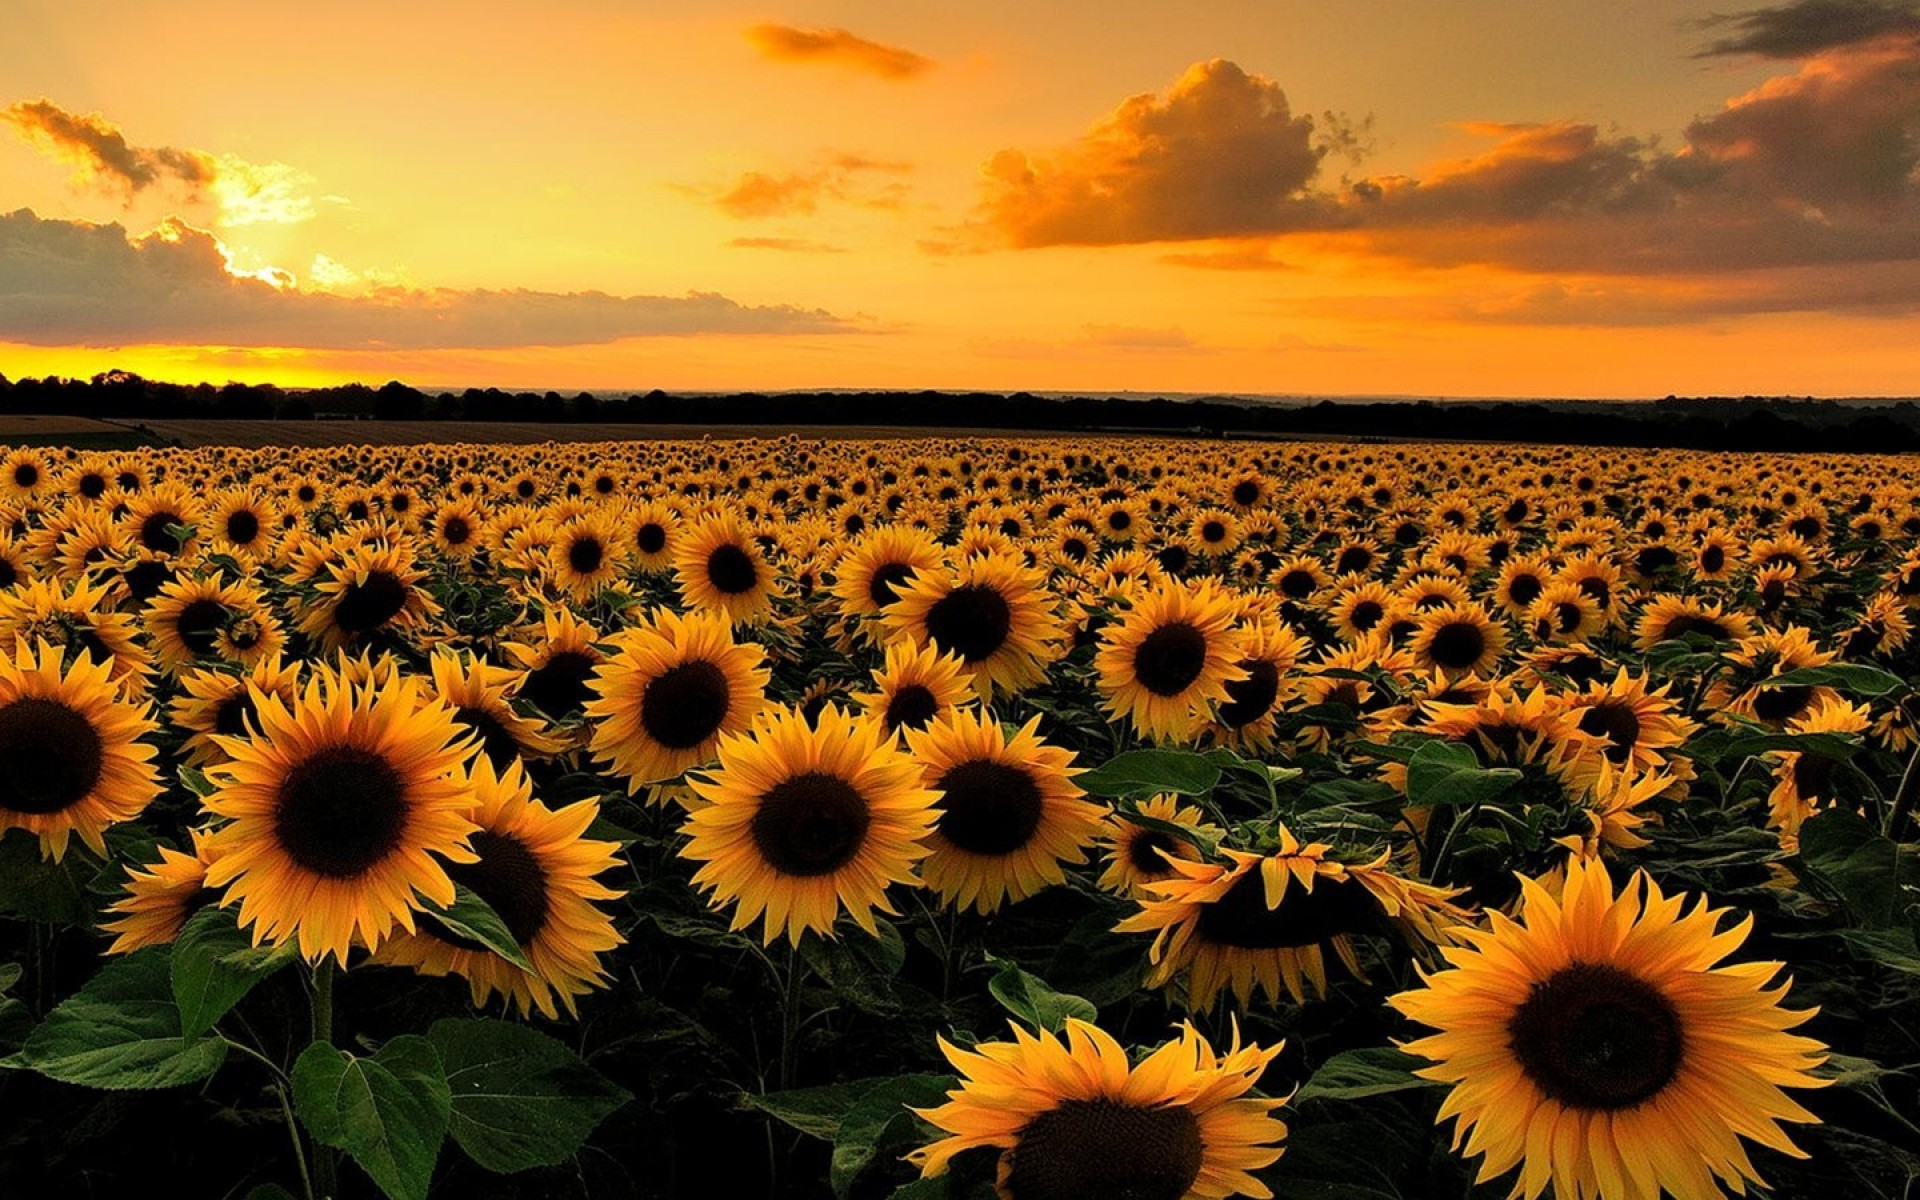 Sunflower Field At Sunset Full HD Wallpaper And Background Image